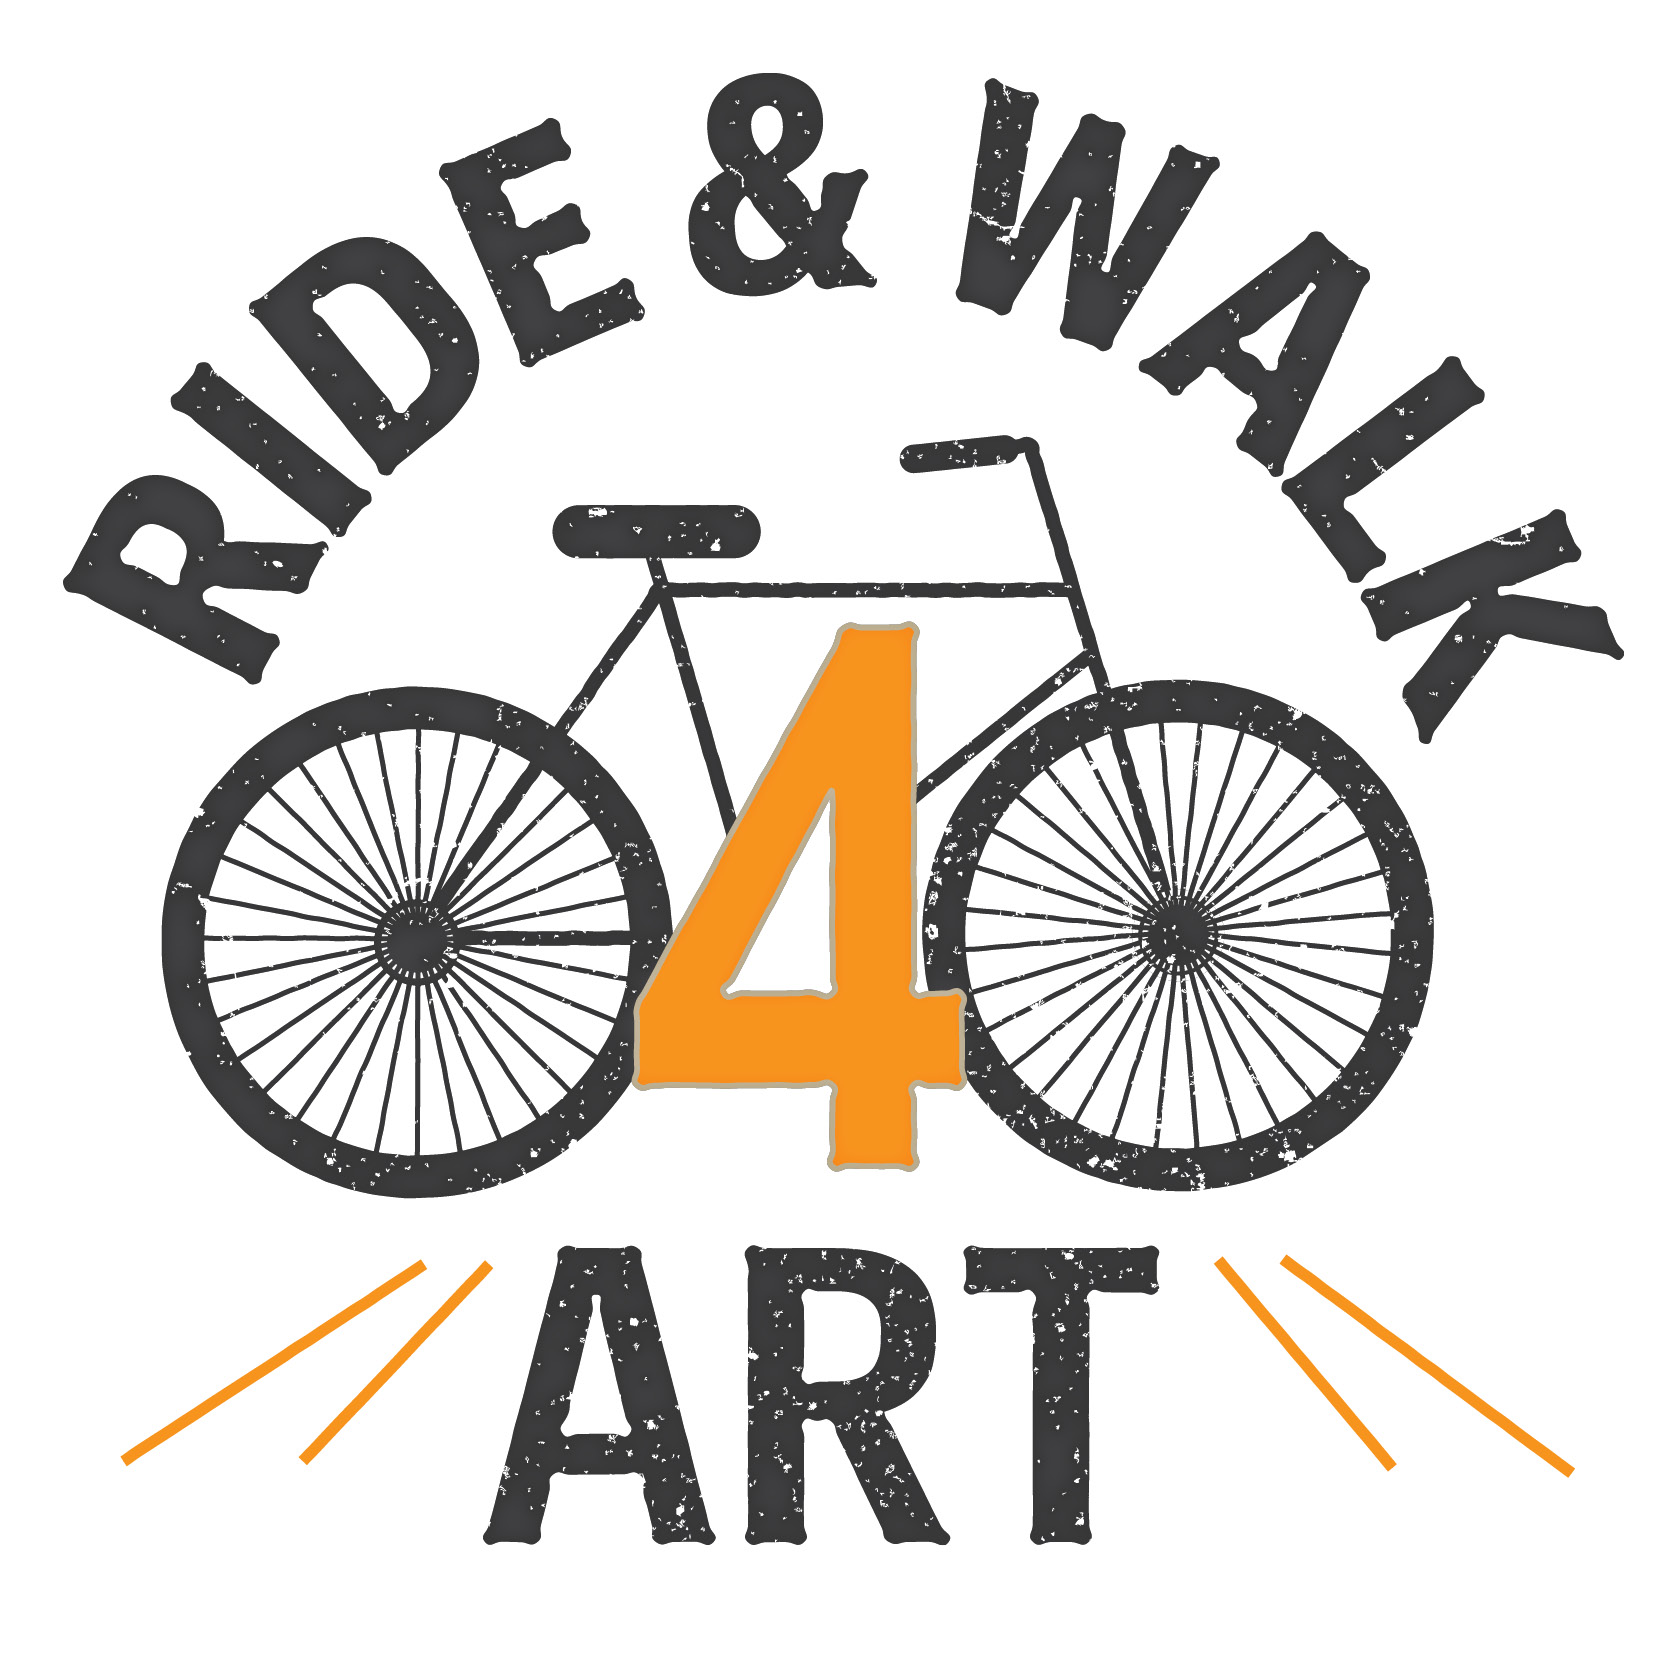 Ride4Art For website 800 x 800.jpg